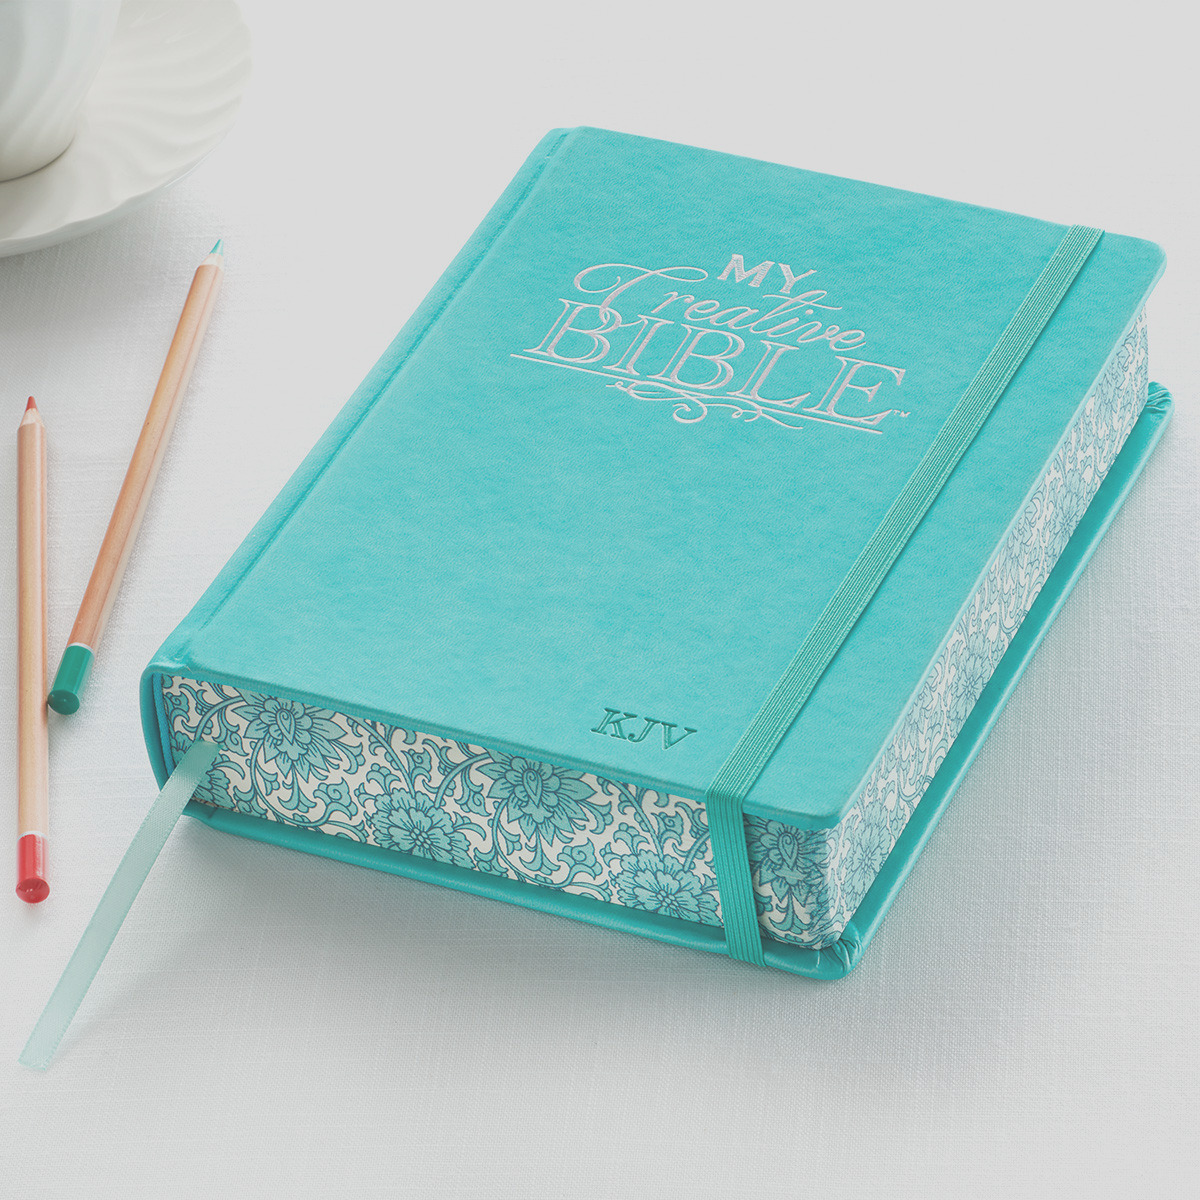 KJV HC LL My Creative Bible Teal